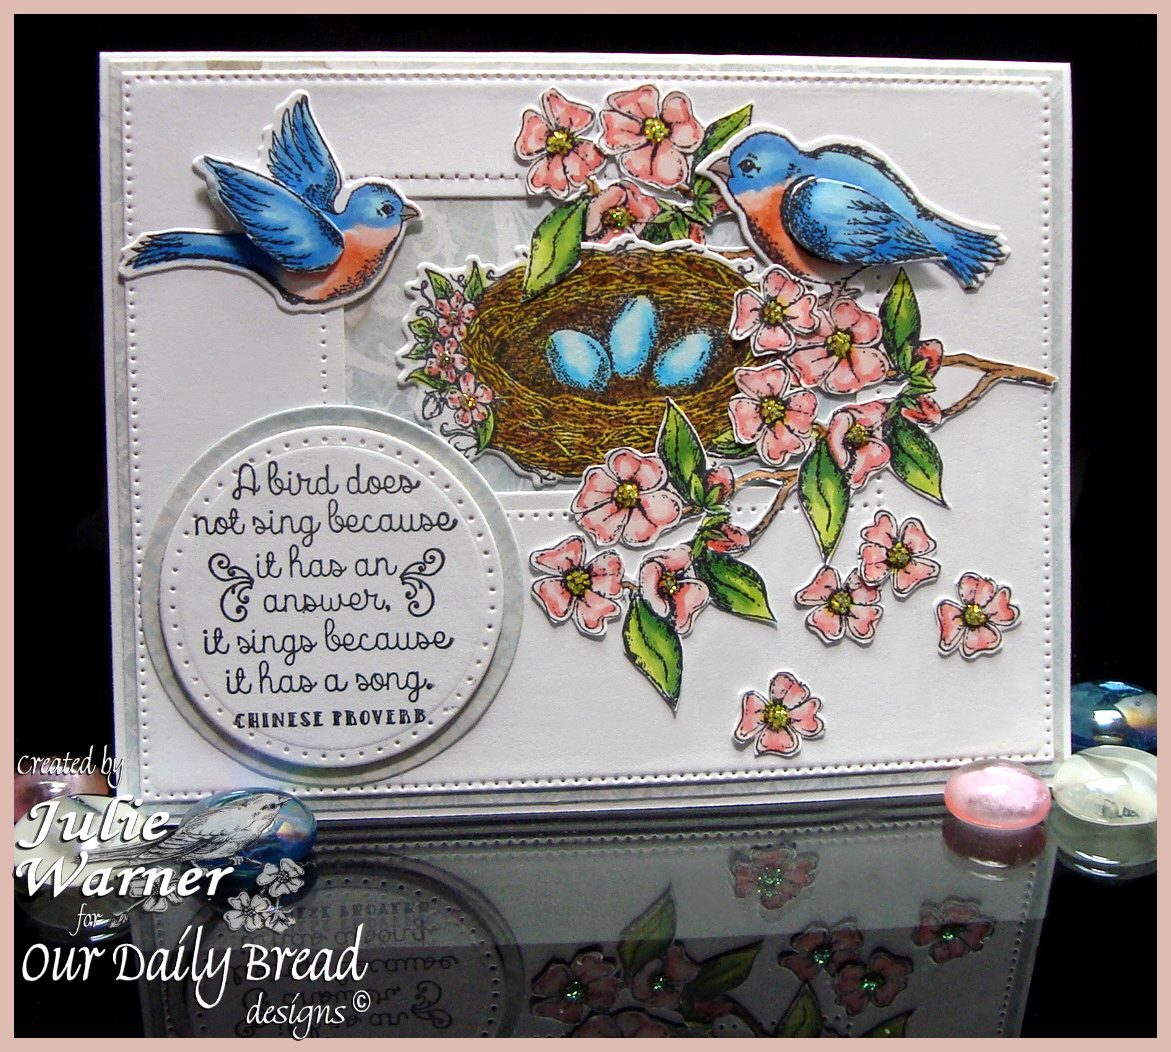 Stamps - Our Daily Bread Designs Spread Your Wings, Dogwood Mini, ODBD Custom Dies: Birds and Nest, Flourished Star Pattern, ODBD Shabby Rose Paper Collection